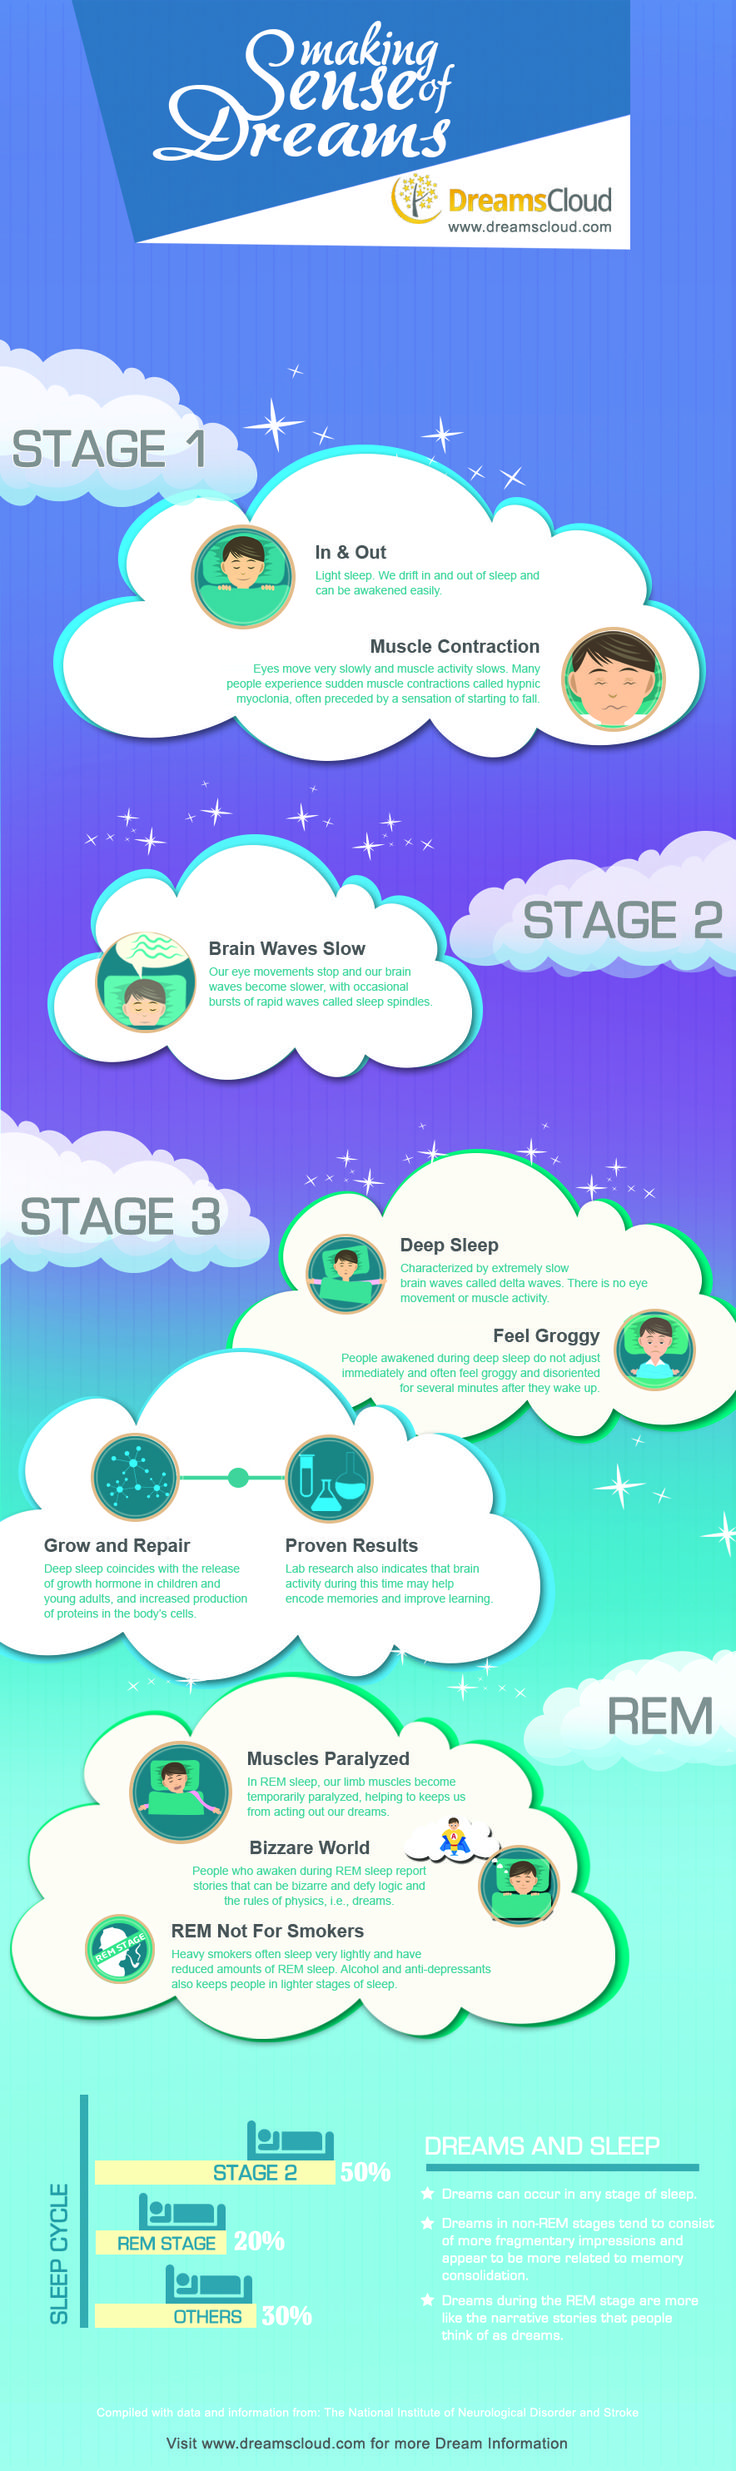 Dreams cloud provides meanings to dream . Dream cloud helps to know the meanings behind your dream and helps you to understand your dreams better.